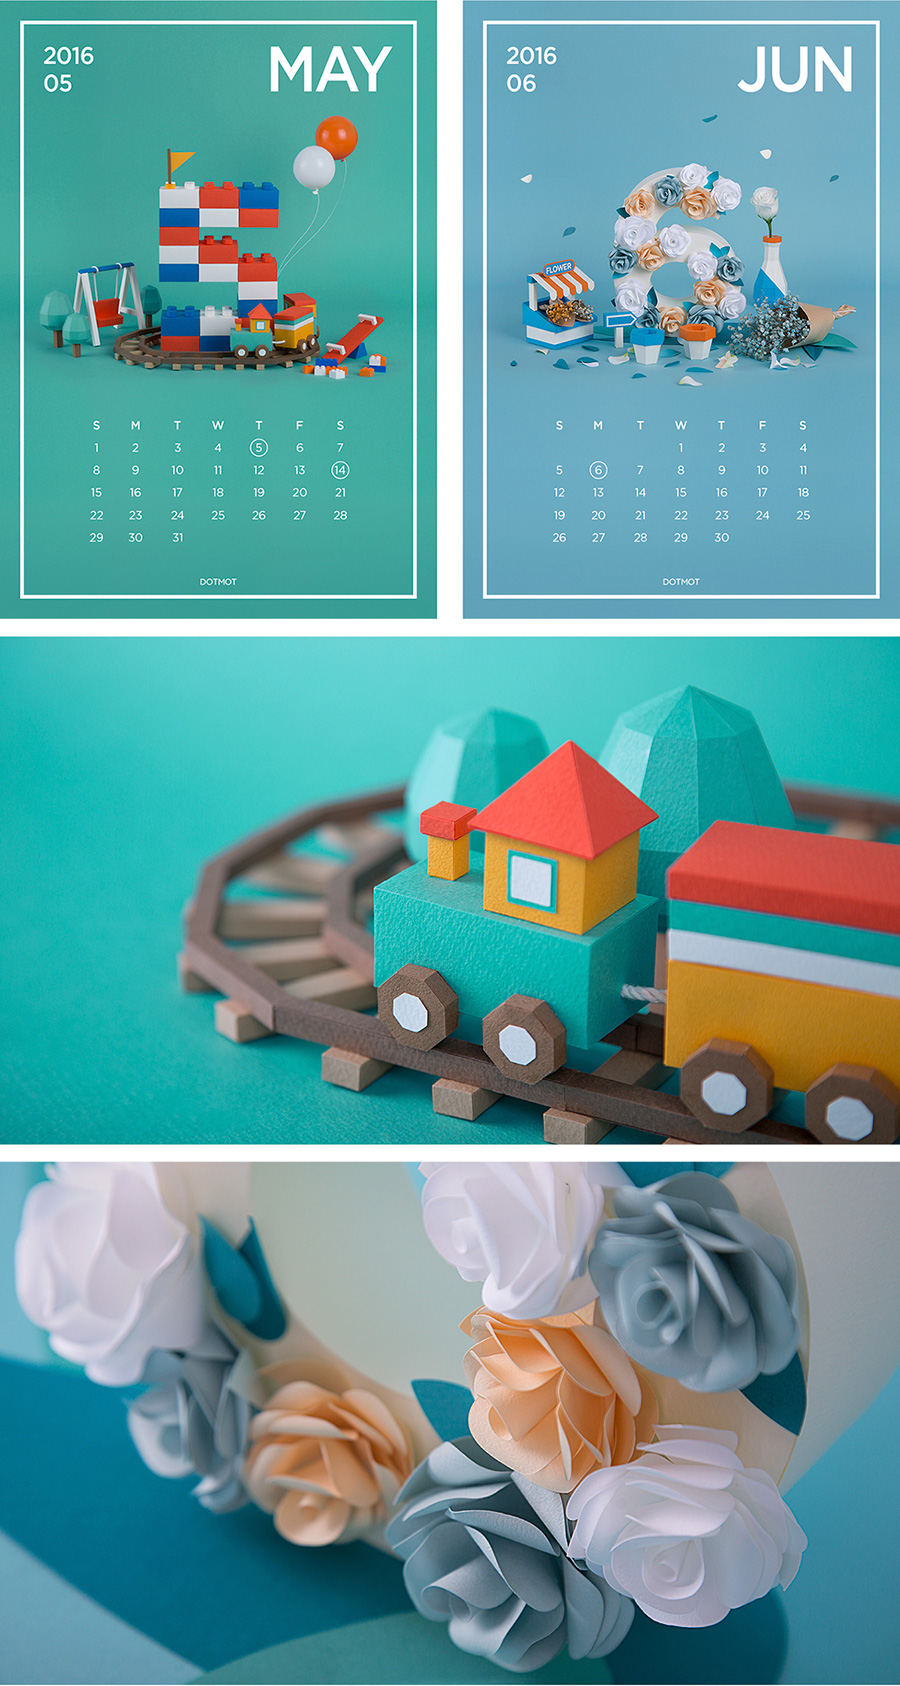 Paper art calender - Calendarios Creativos 2016